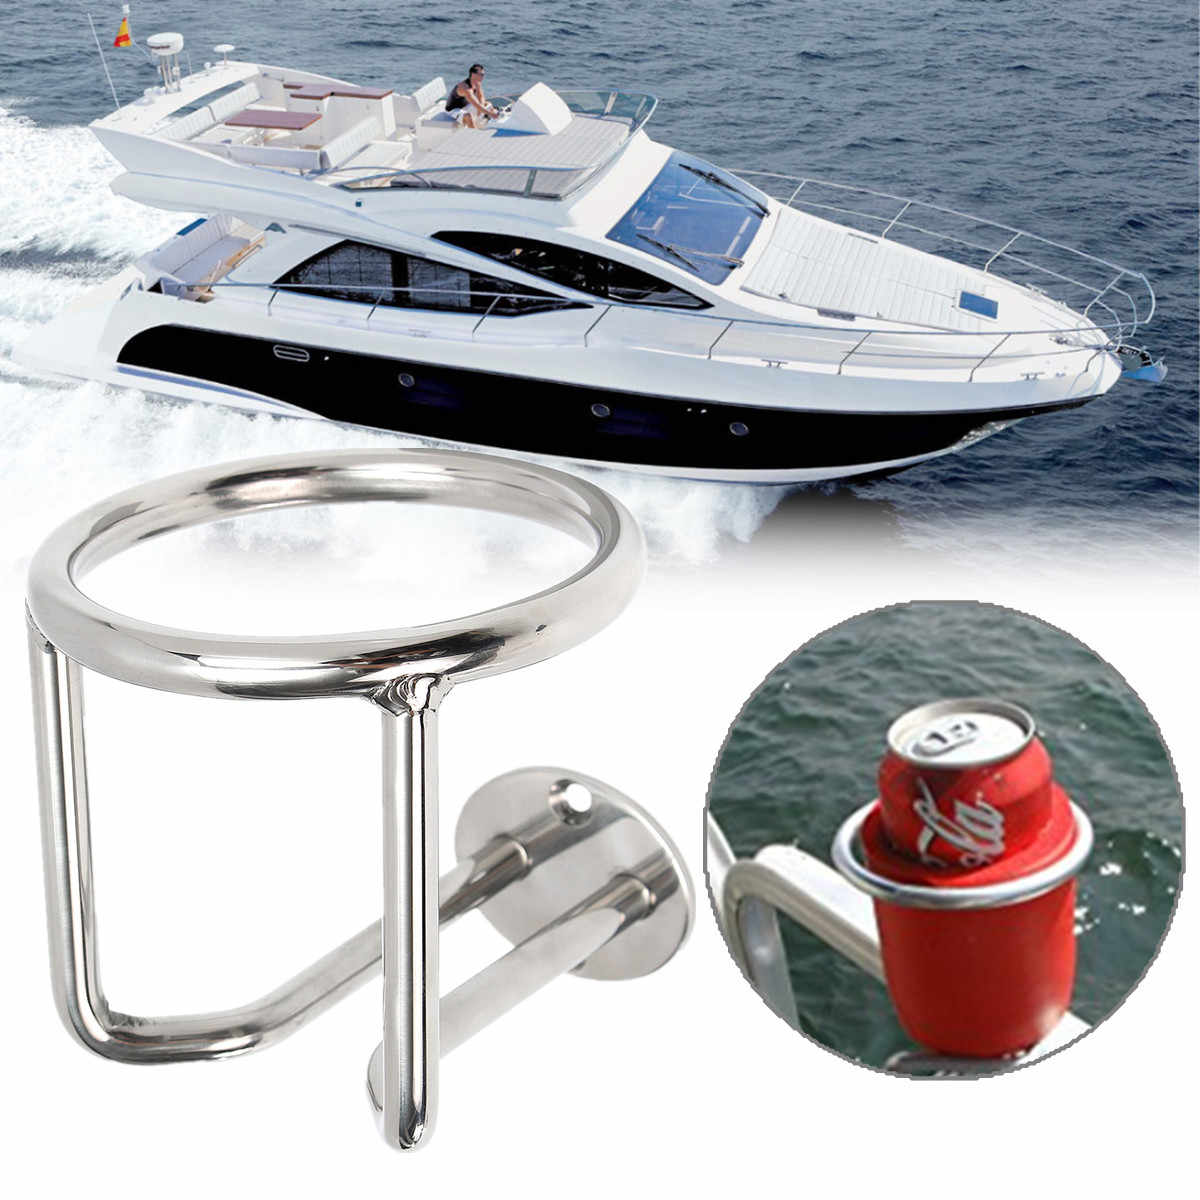 1pcs Folding Drink Cup Holder Marine Cup Holder Stainless Steel Marine Boat Cup Holder with 4 Screw for Car Boat Marine Caravan Trucks